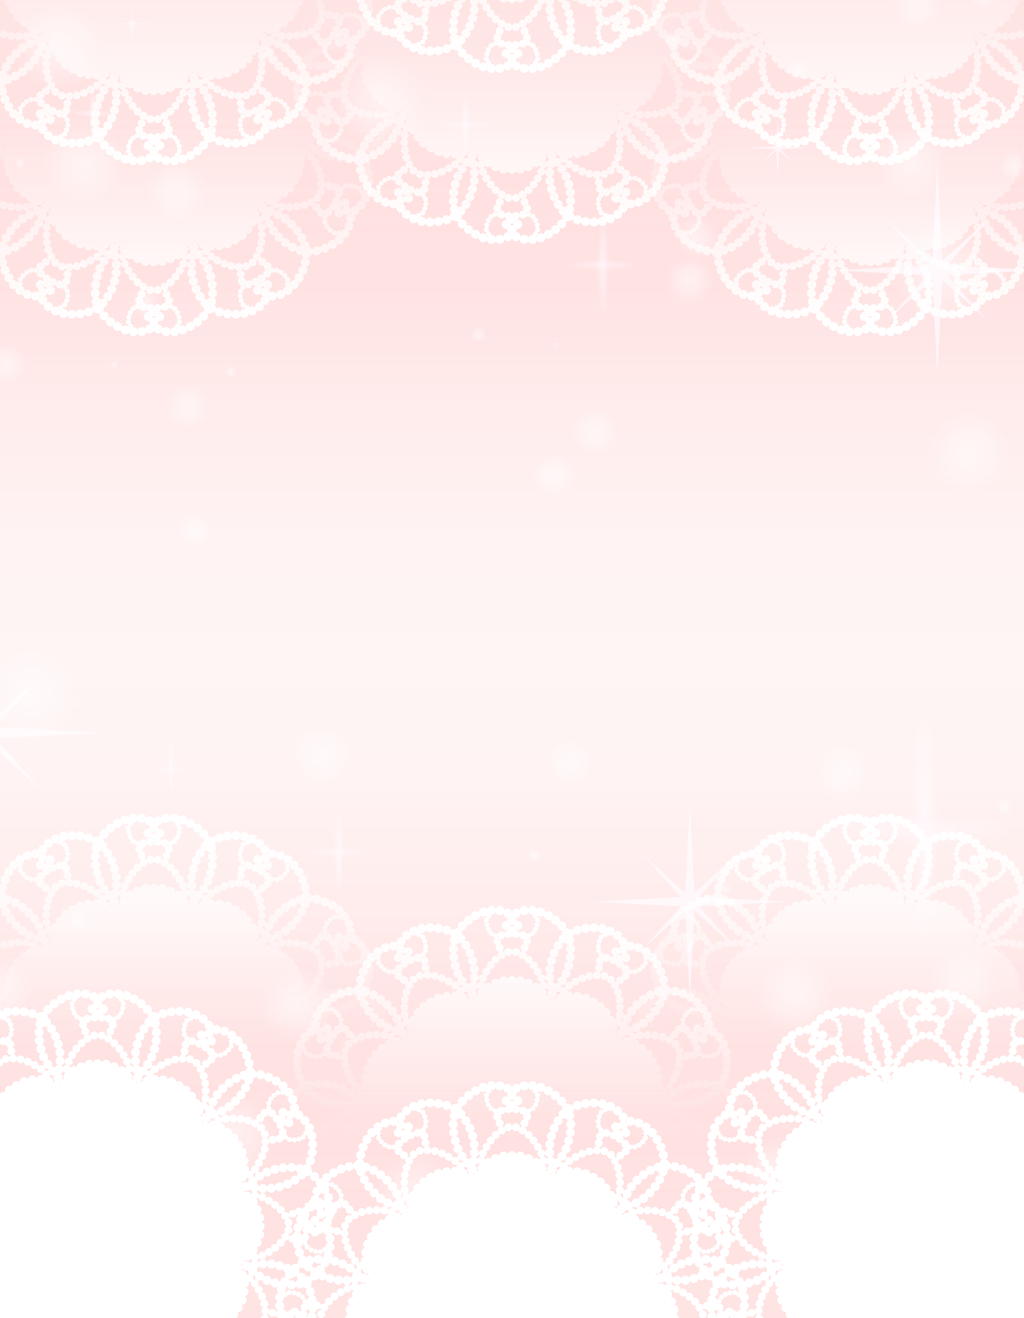 Light Pink Lace - 8.5 x 11 by SparkleStuff on DeviantArt